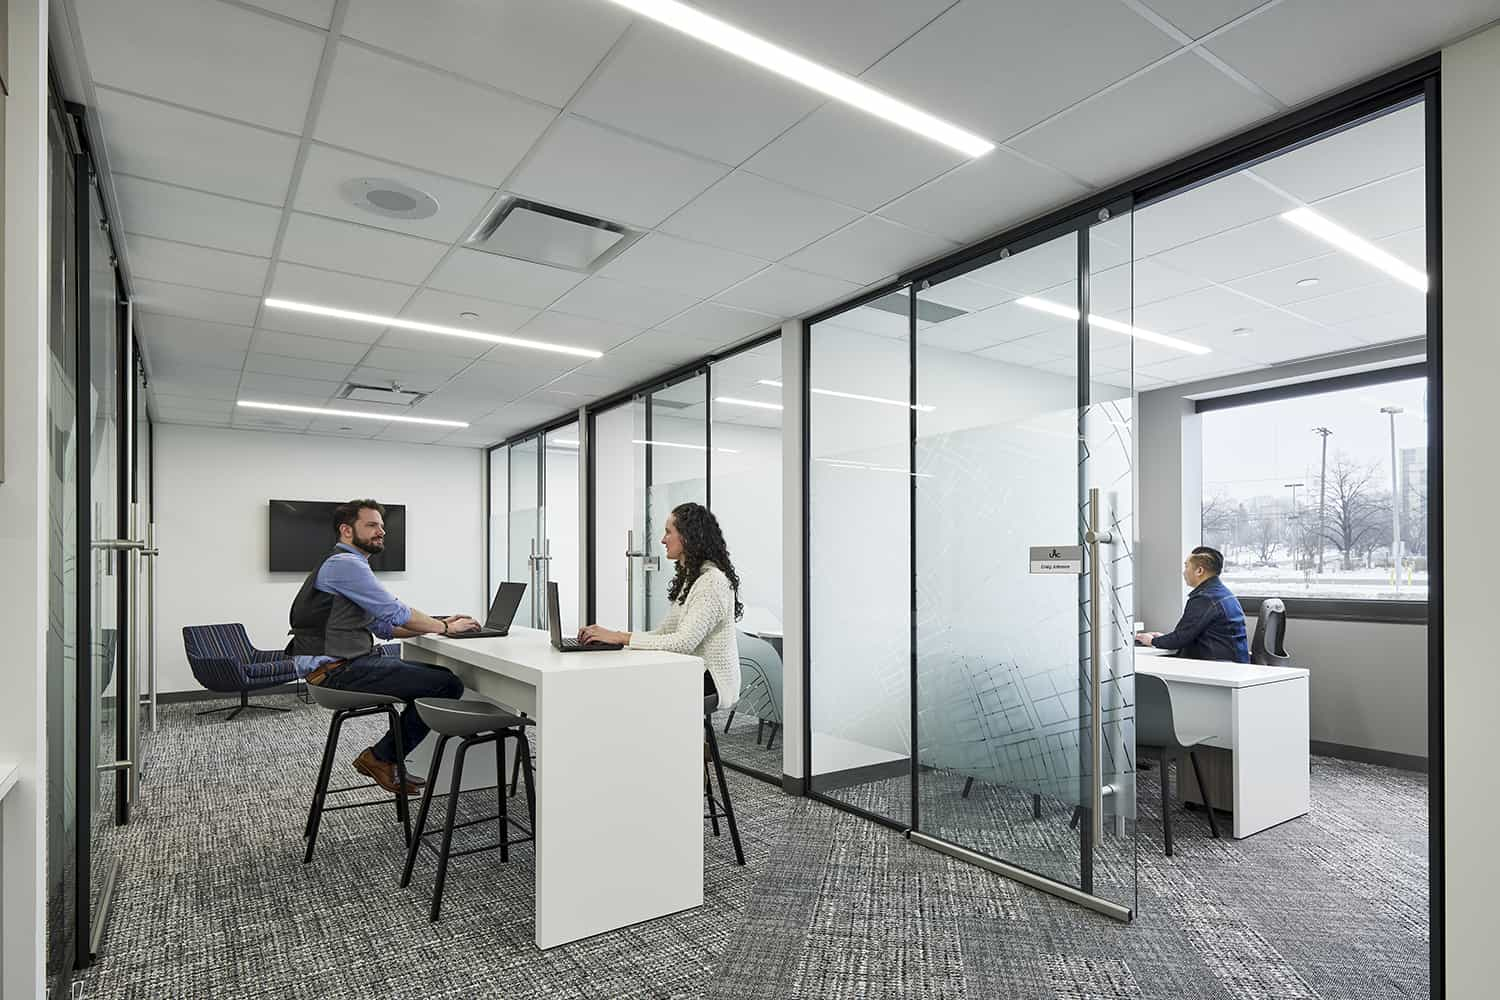 Break out space outside of private offices.